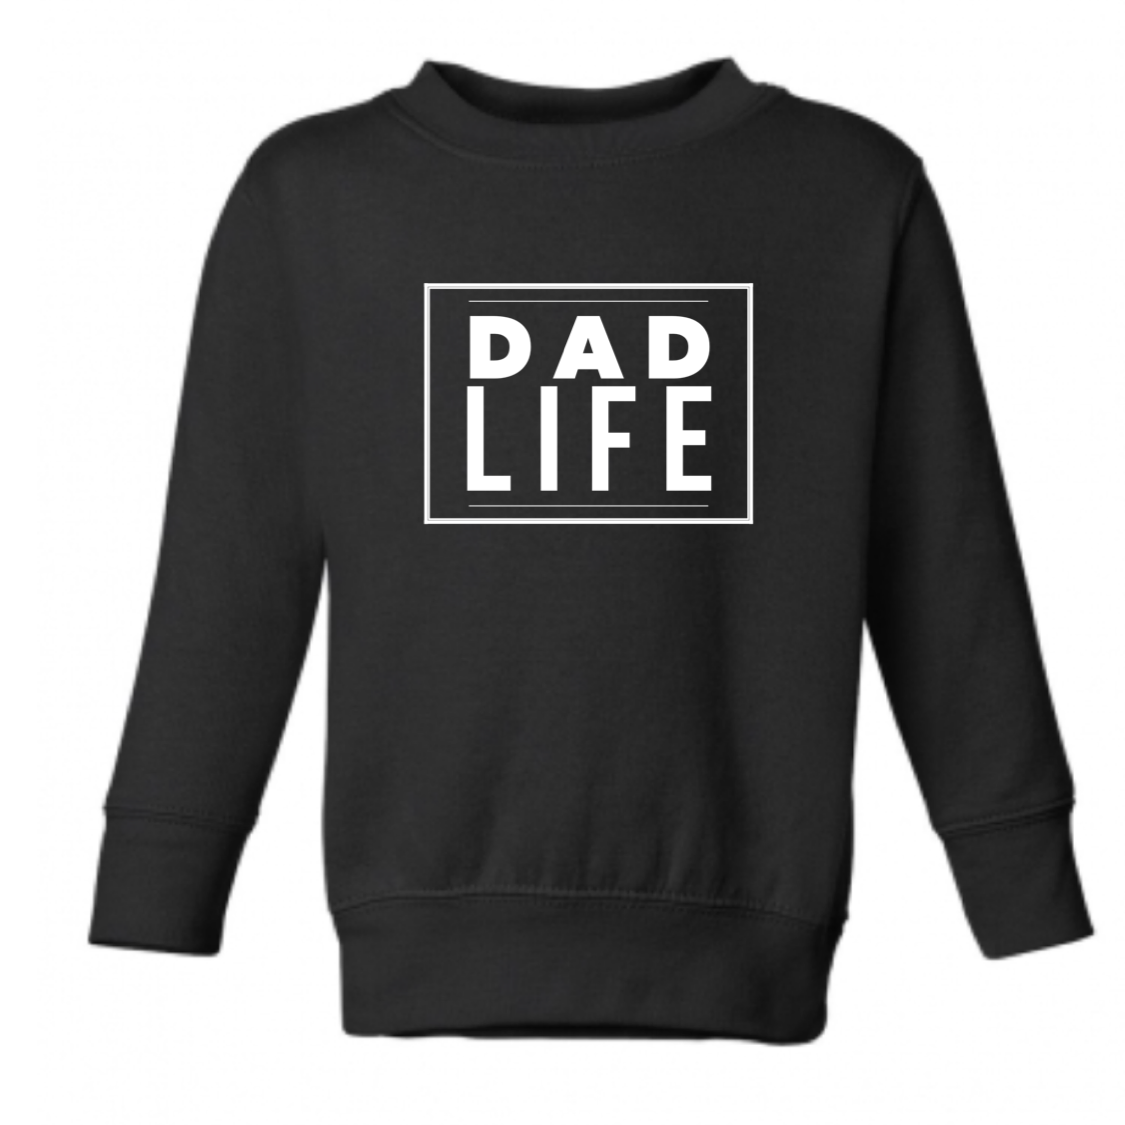 Crew Neck Black Dad Life